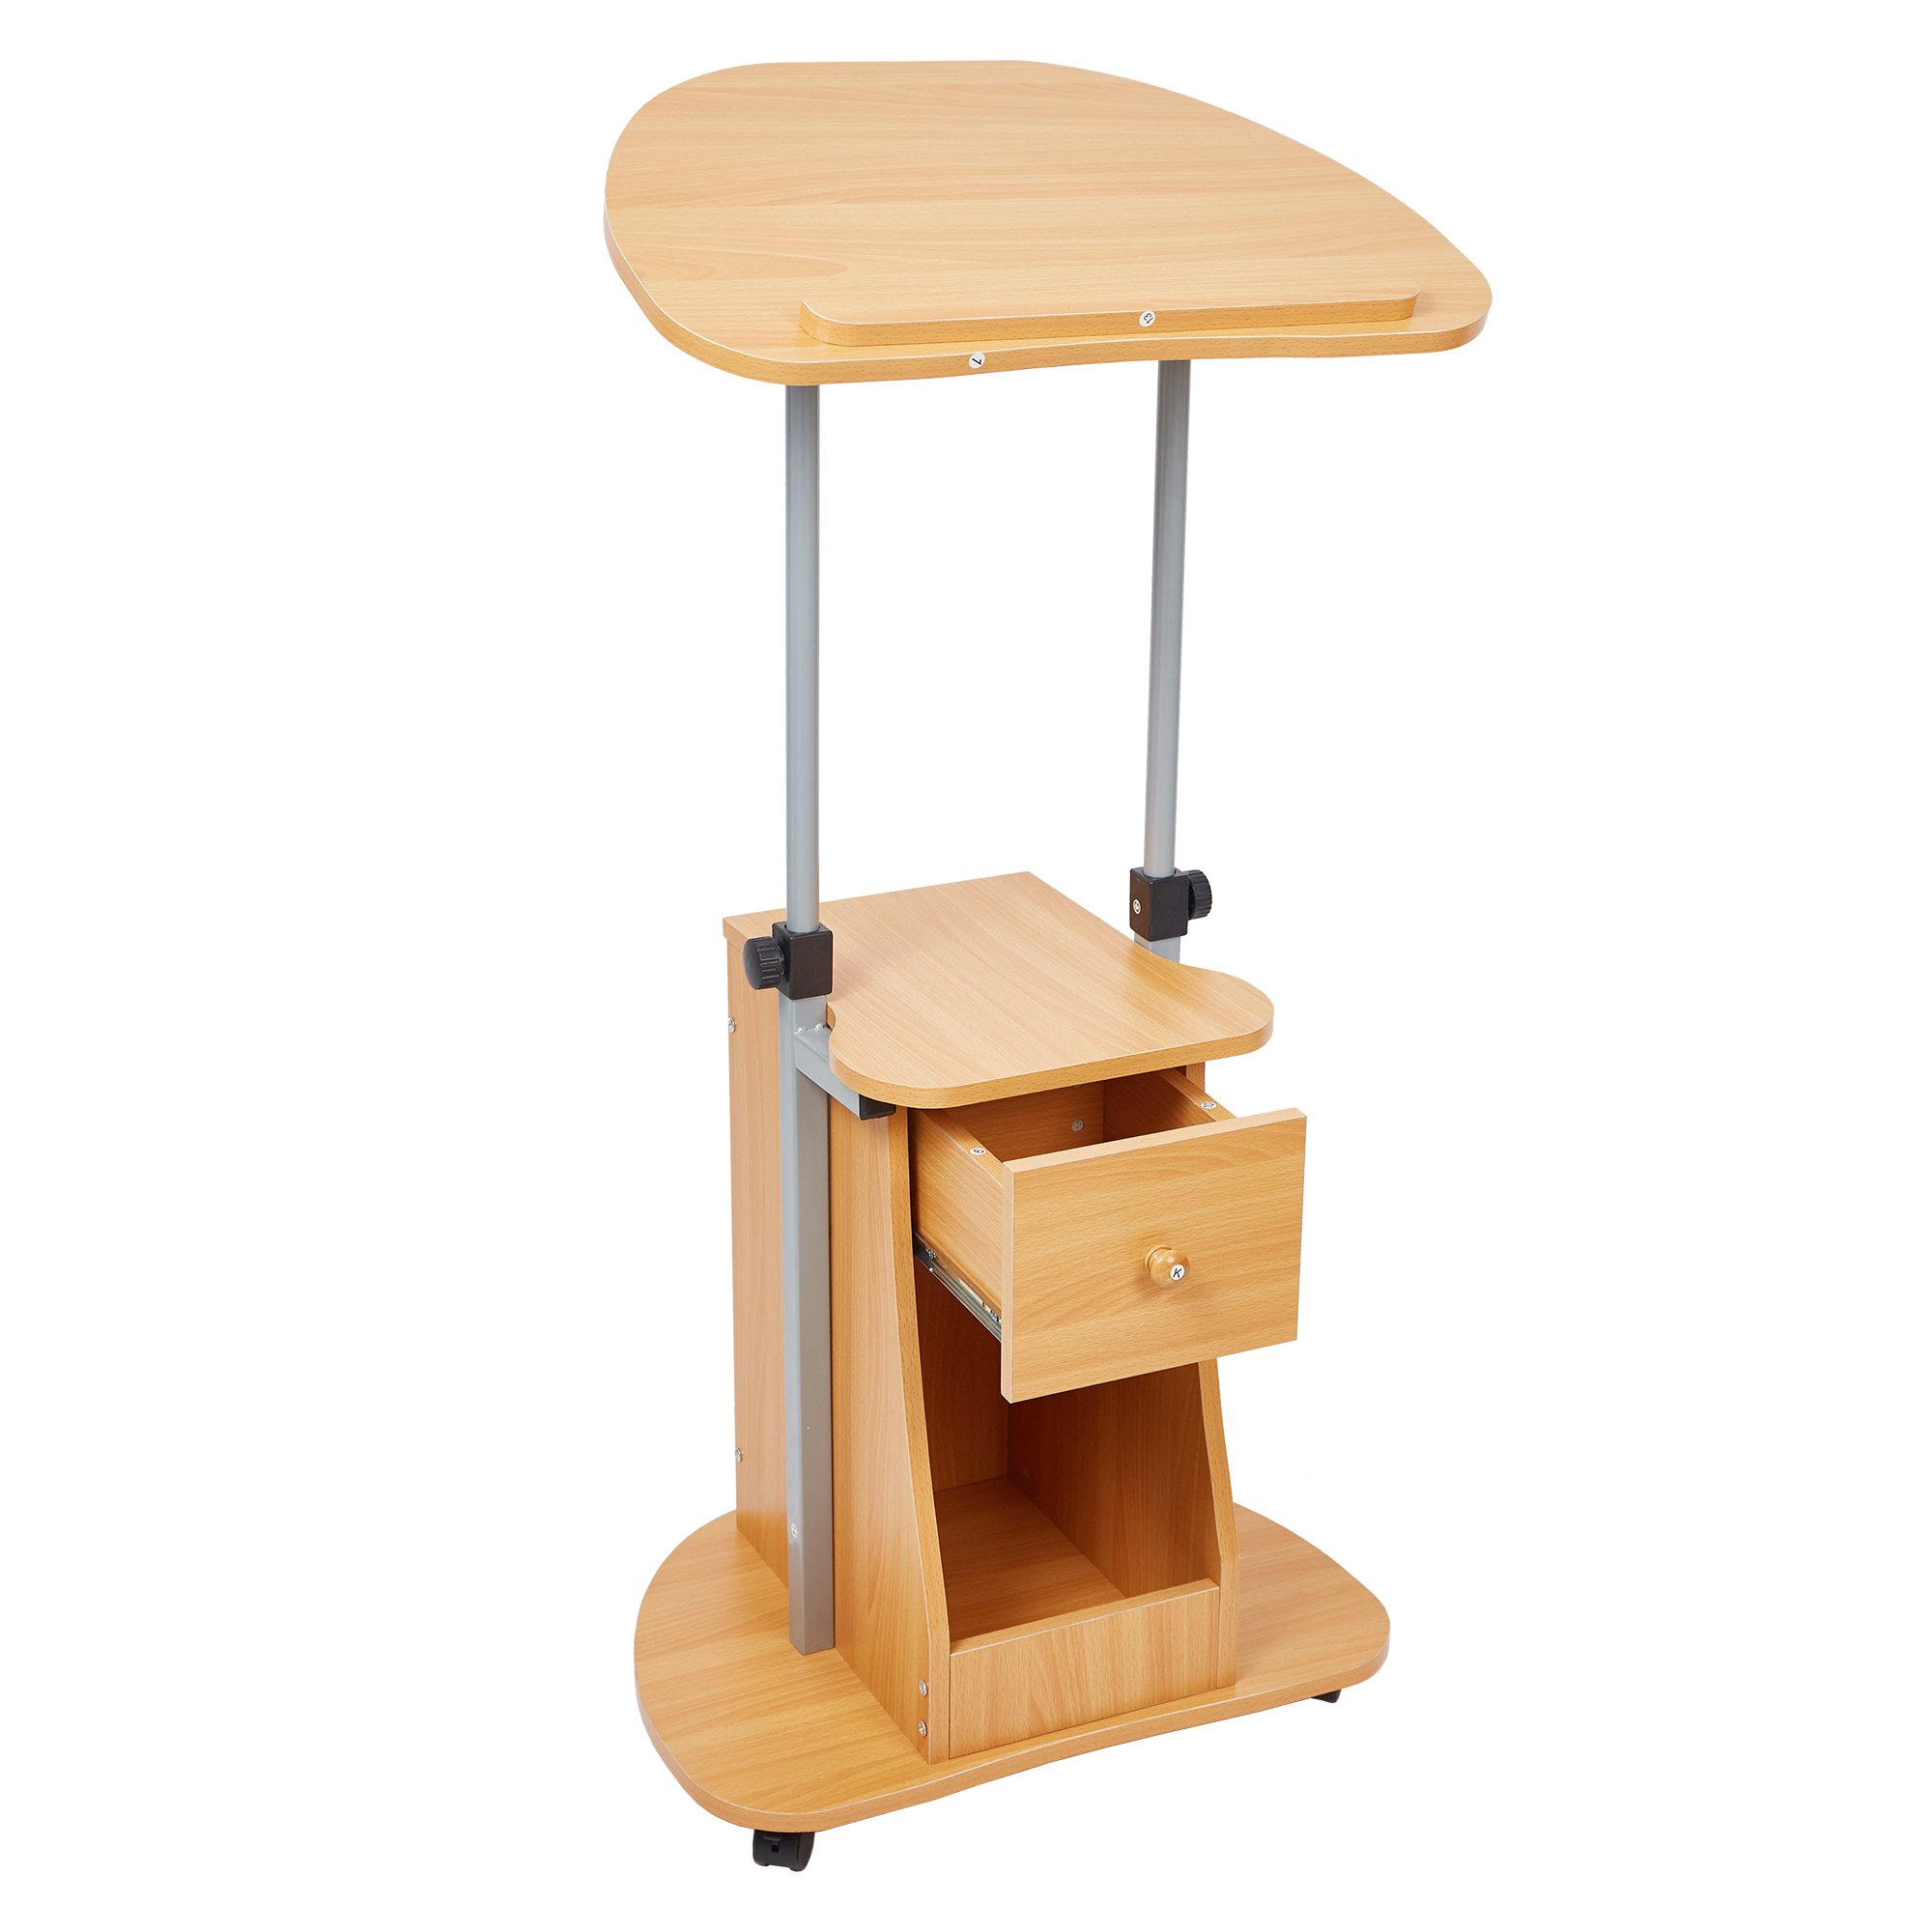 Livebest Height Adjustable Laptop Cart with Storage - Standing Lectern Podium Tabletop Lectern Portable with Wheels,Storage Shelf for Church,School Speech